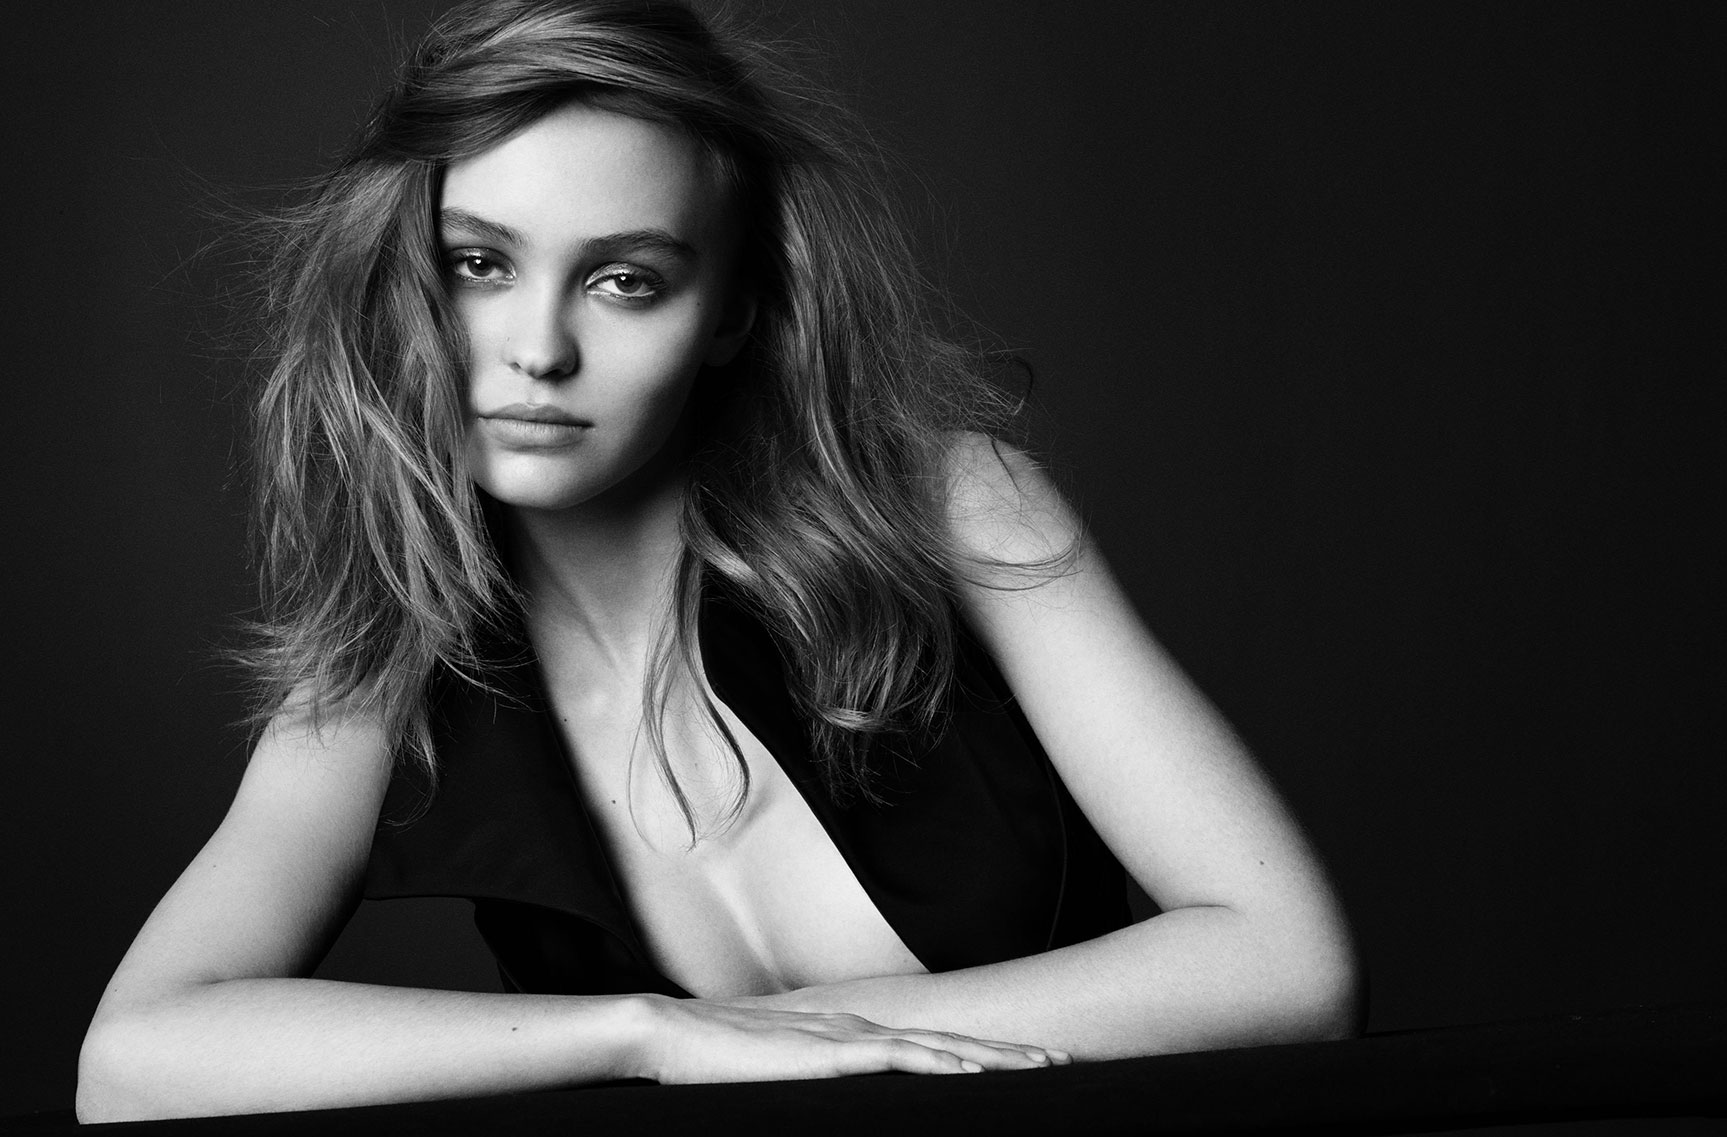 Лили-Роуз Депп / Lily-Rose Depp by Tom Munro - Vogue Italia march 2017